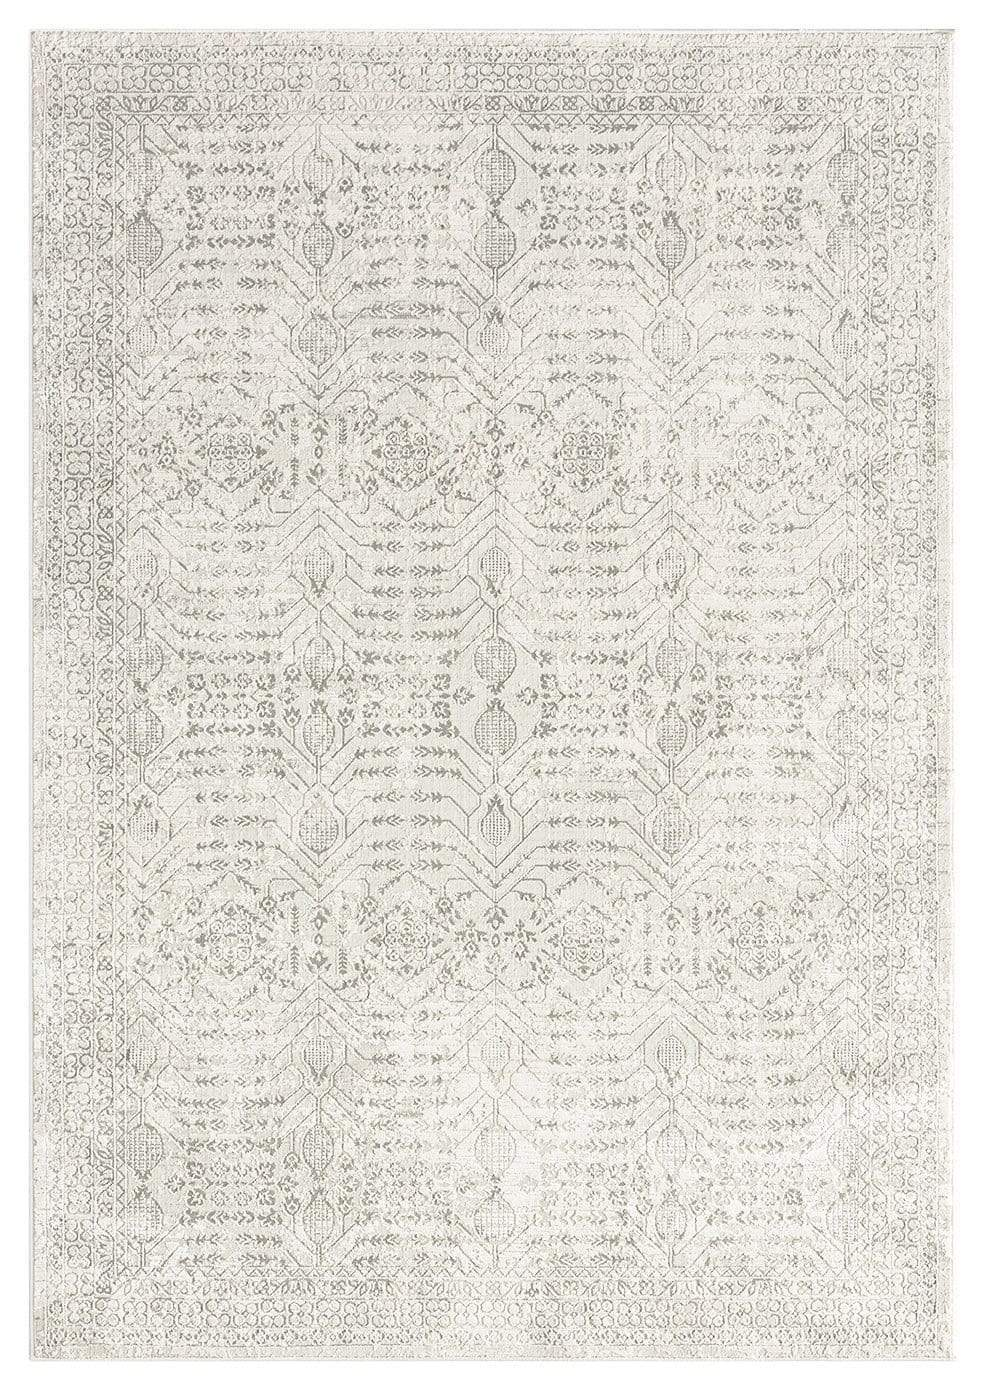 Wilamina Grey and Ivory Distressed Floral Rug